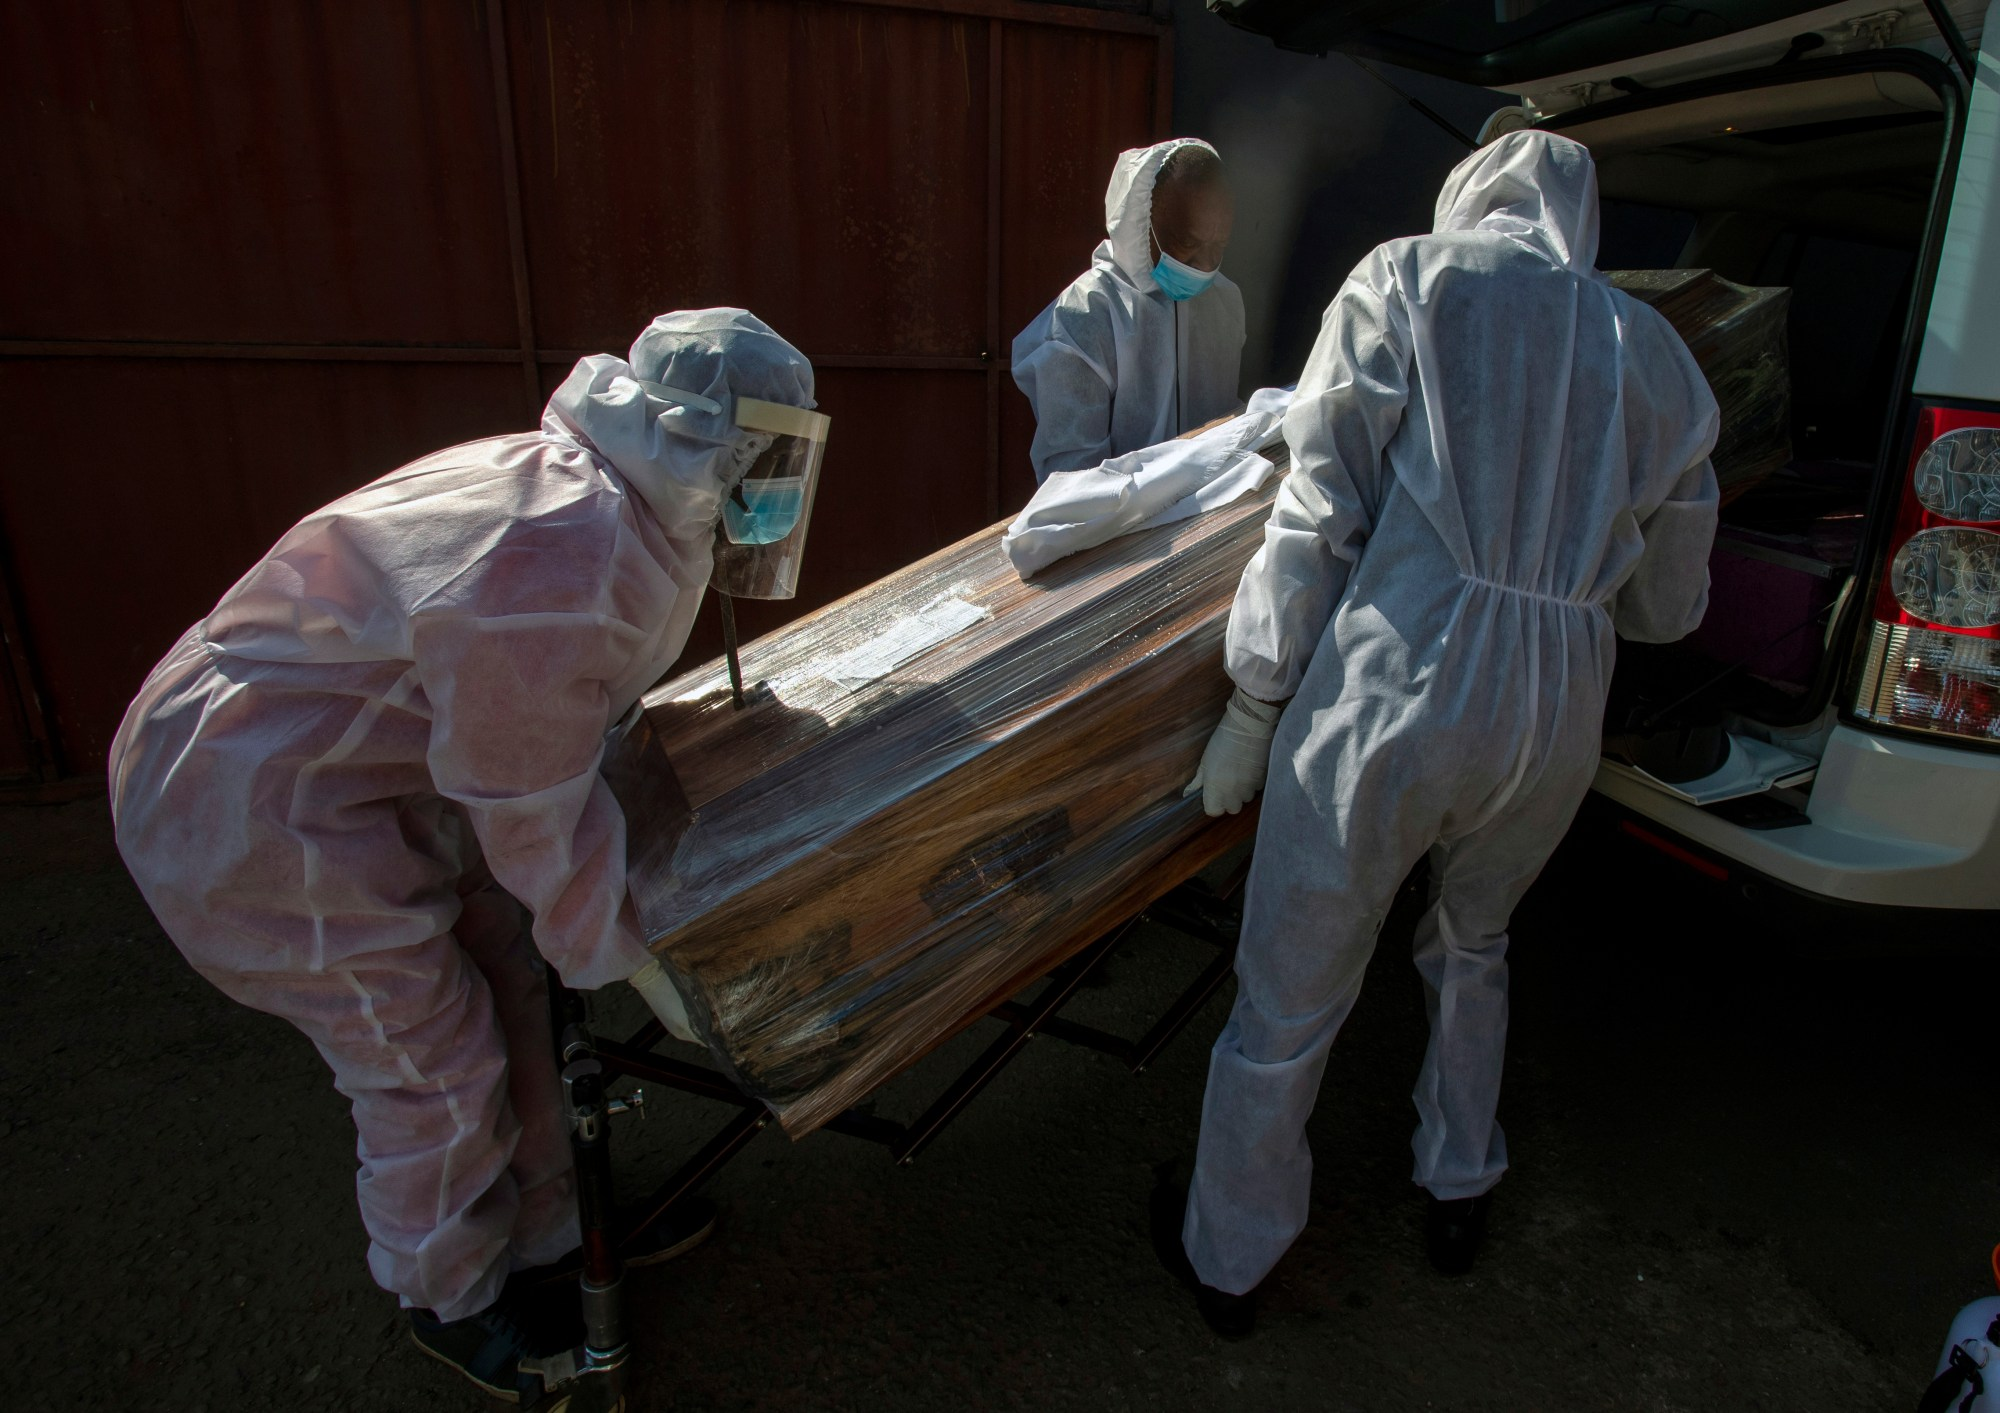 In this July 21 2020, file photo, funeral home workers in protective suits carry the coffin of a woman who died from COVID-19 into a hearse in Katlehong, near Johannesburg, South Africa. (Themba Hadebe/Associated Press)